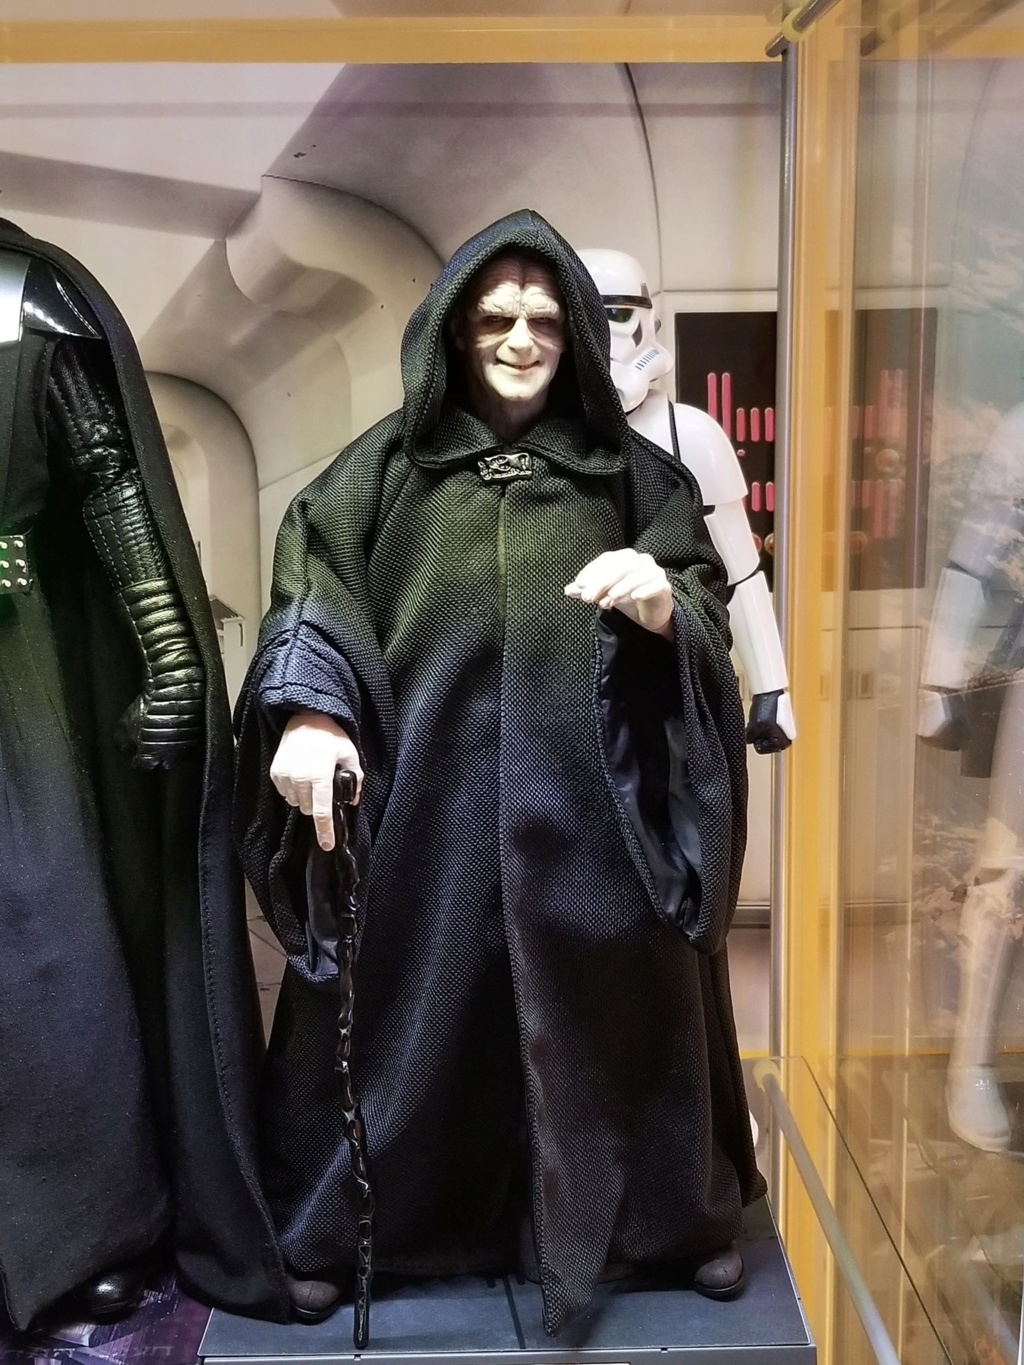 rotj - Hot Toys Star Wars Emperor Palpatine (Deluxe) Review - Page 2 48423010